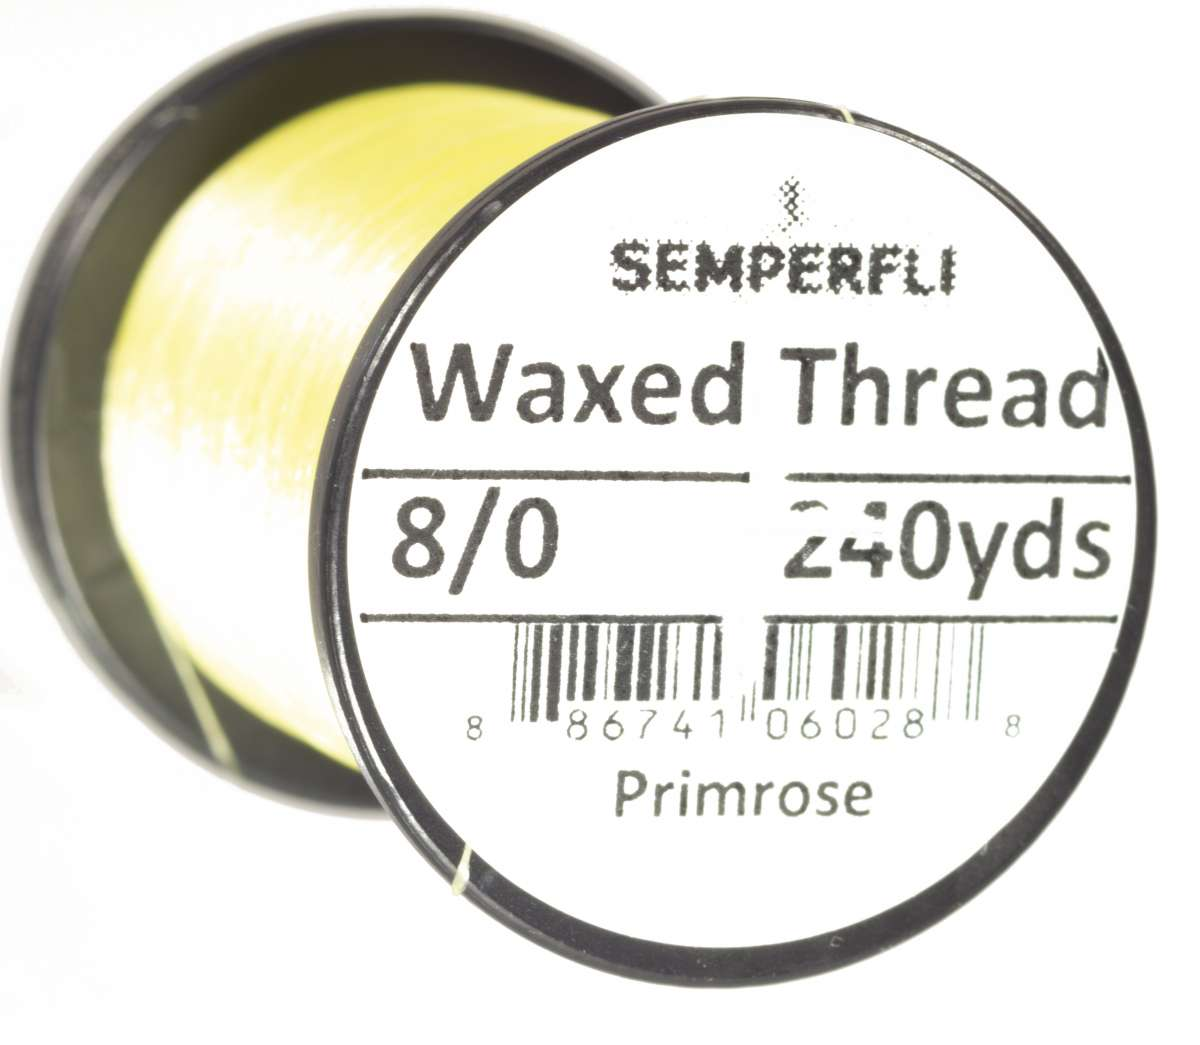 8/0 Classic Waxed Thread Primrose Sem-0400-1432